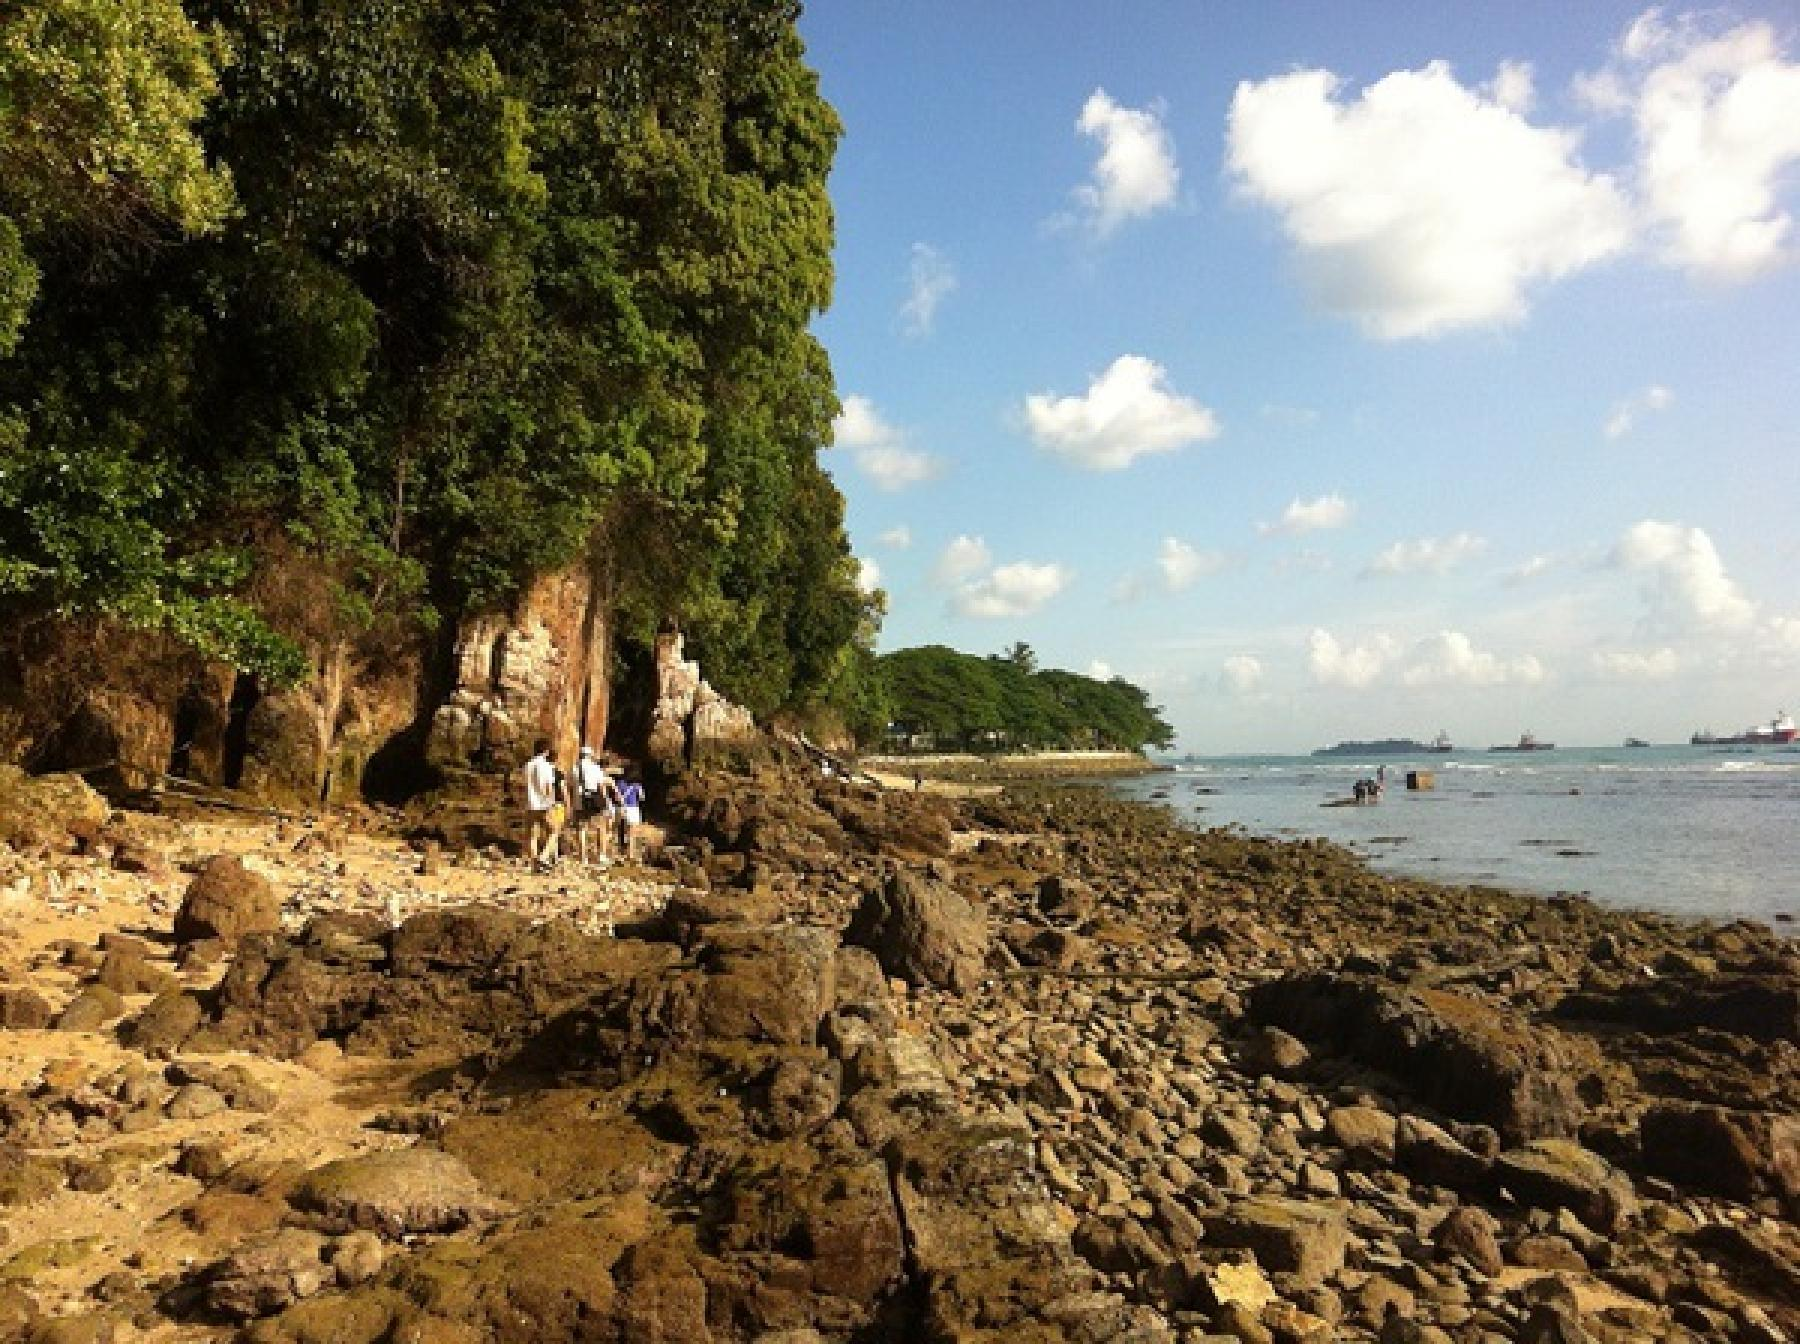 Let's hike the Hidden Beach of Sentosa starting at Sentosa Singapore